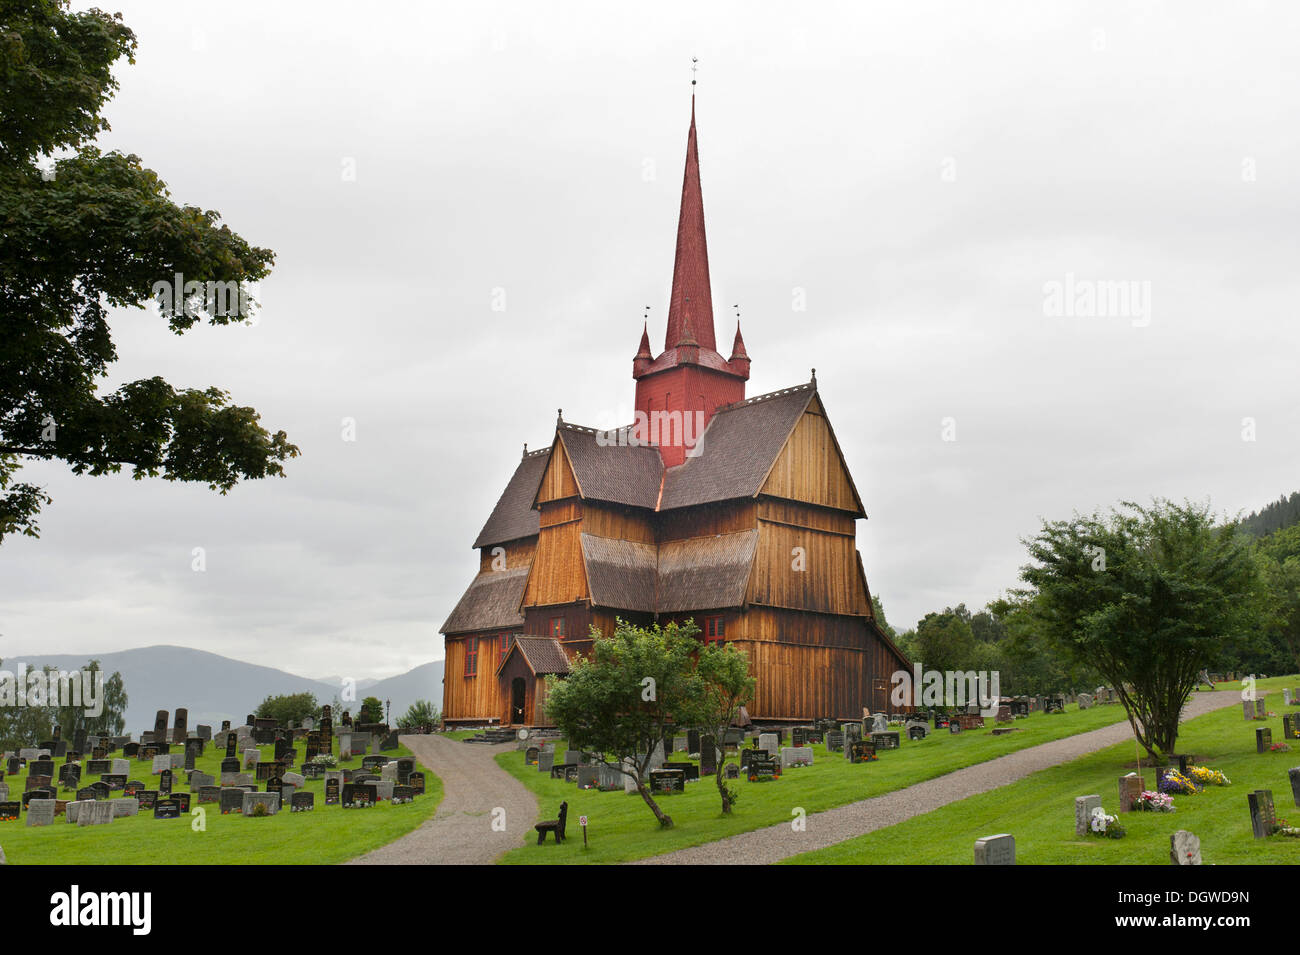 Historical wooden church with a red spire, stave church of Ringebu, Gudbrandsdal, Oppland, Norway, Scandinavia, Northern Europe - Stock Image